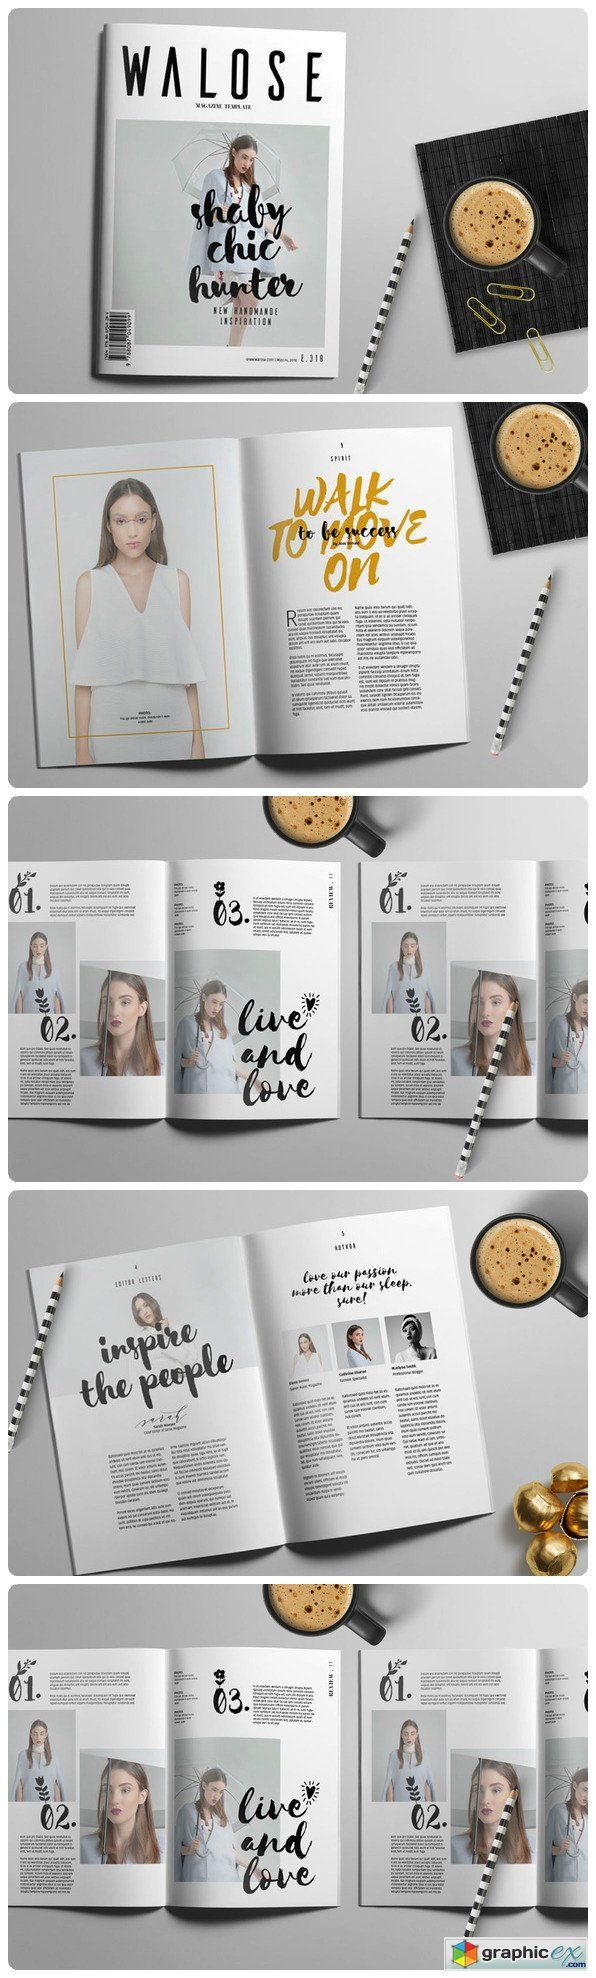 InDesign Magazine Template 575634                                                                                                                                                                                 More